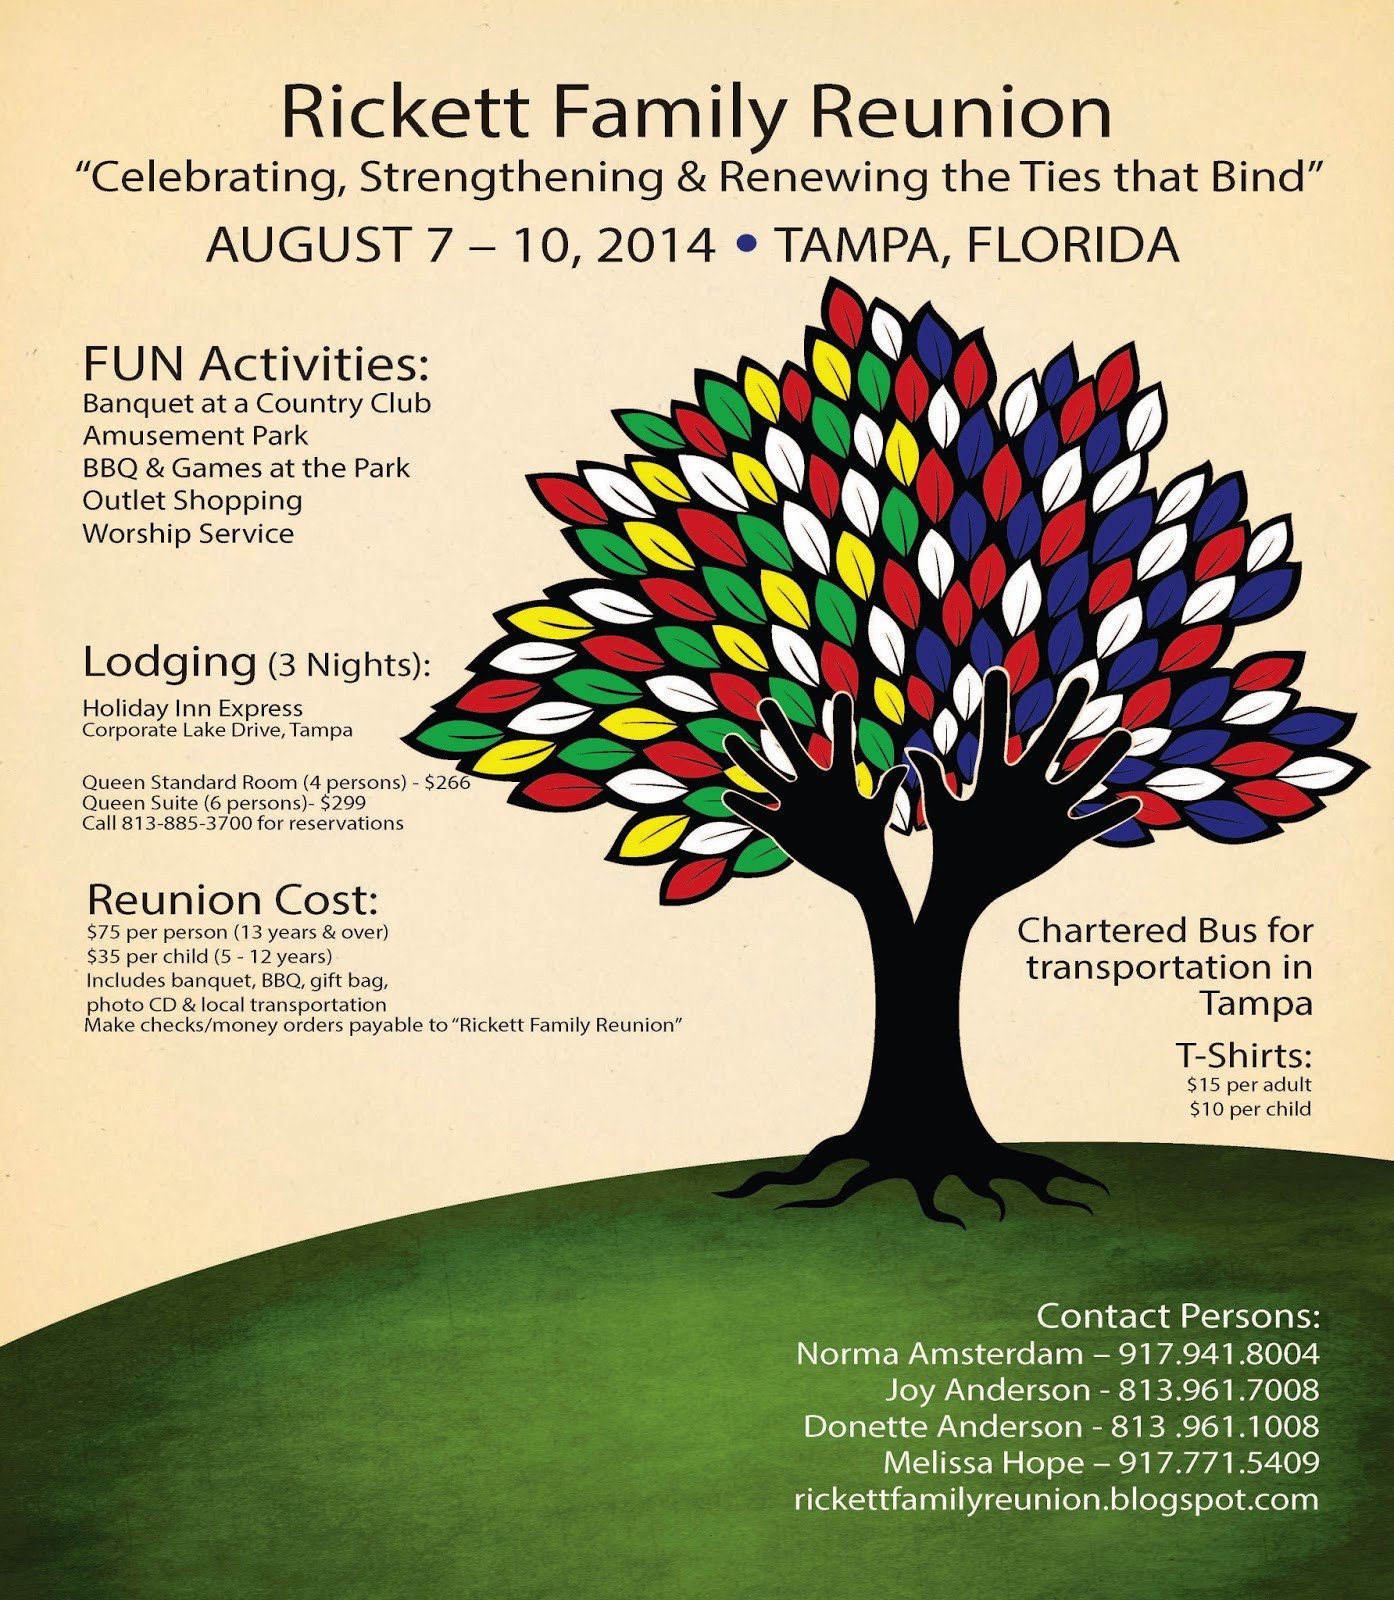 Family Reunion Flyers Templates Rickett Family Reunion Blog